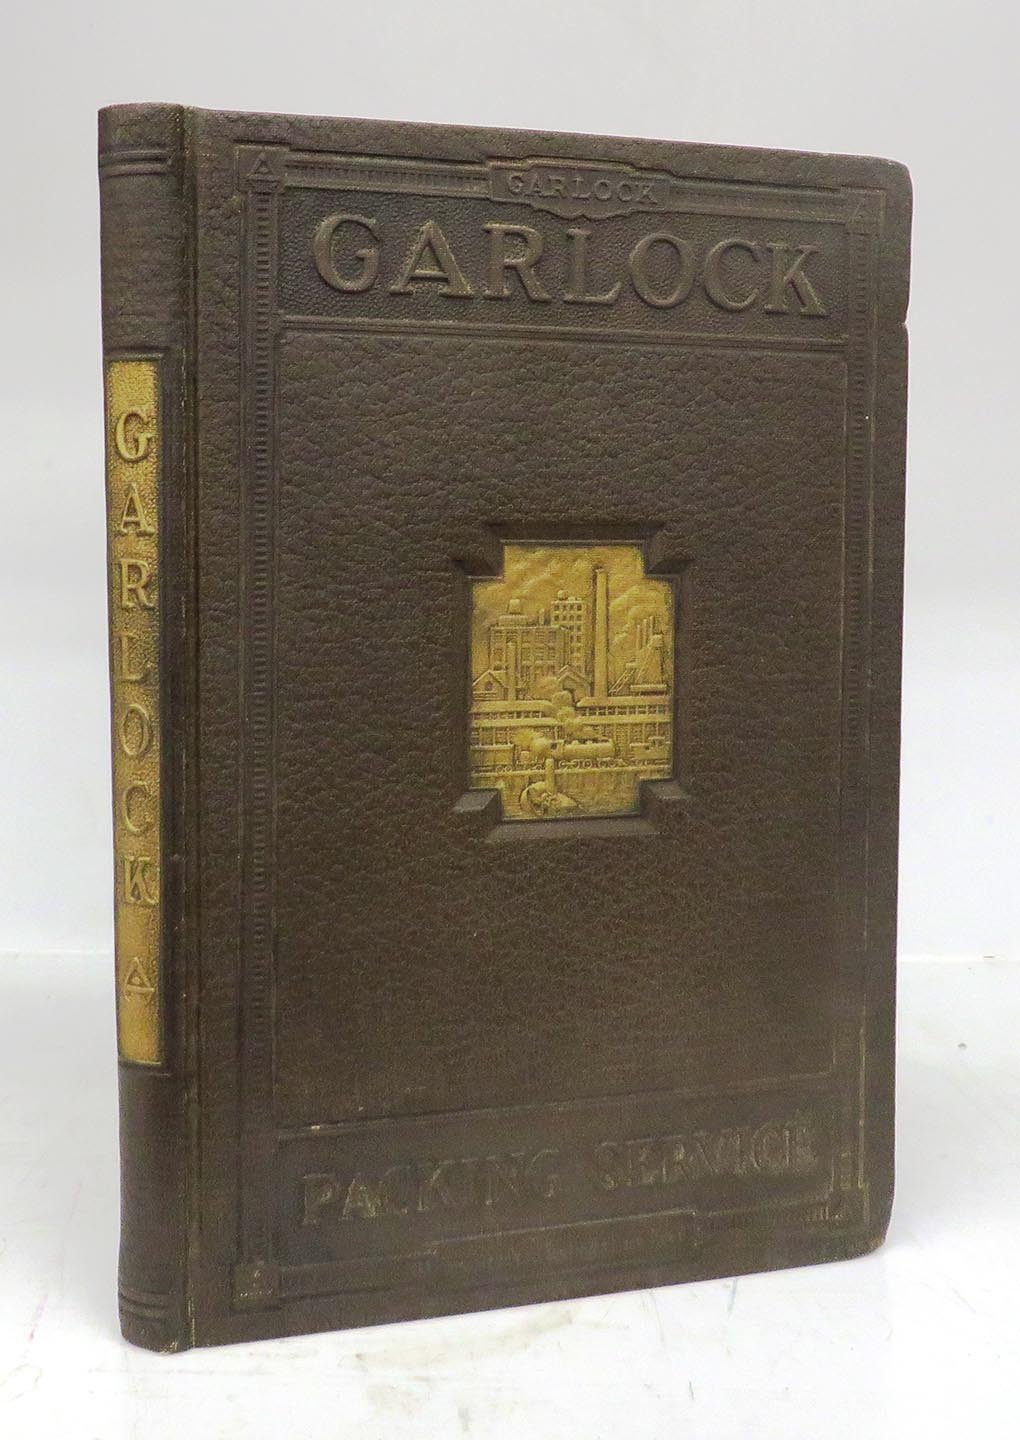 Garlock Packing Service Catalogue A-1925